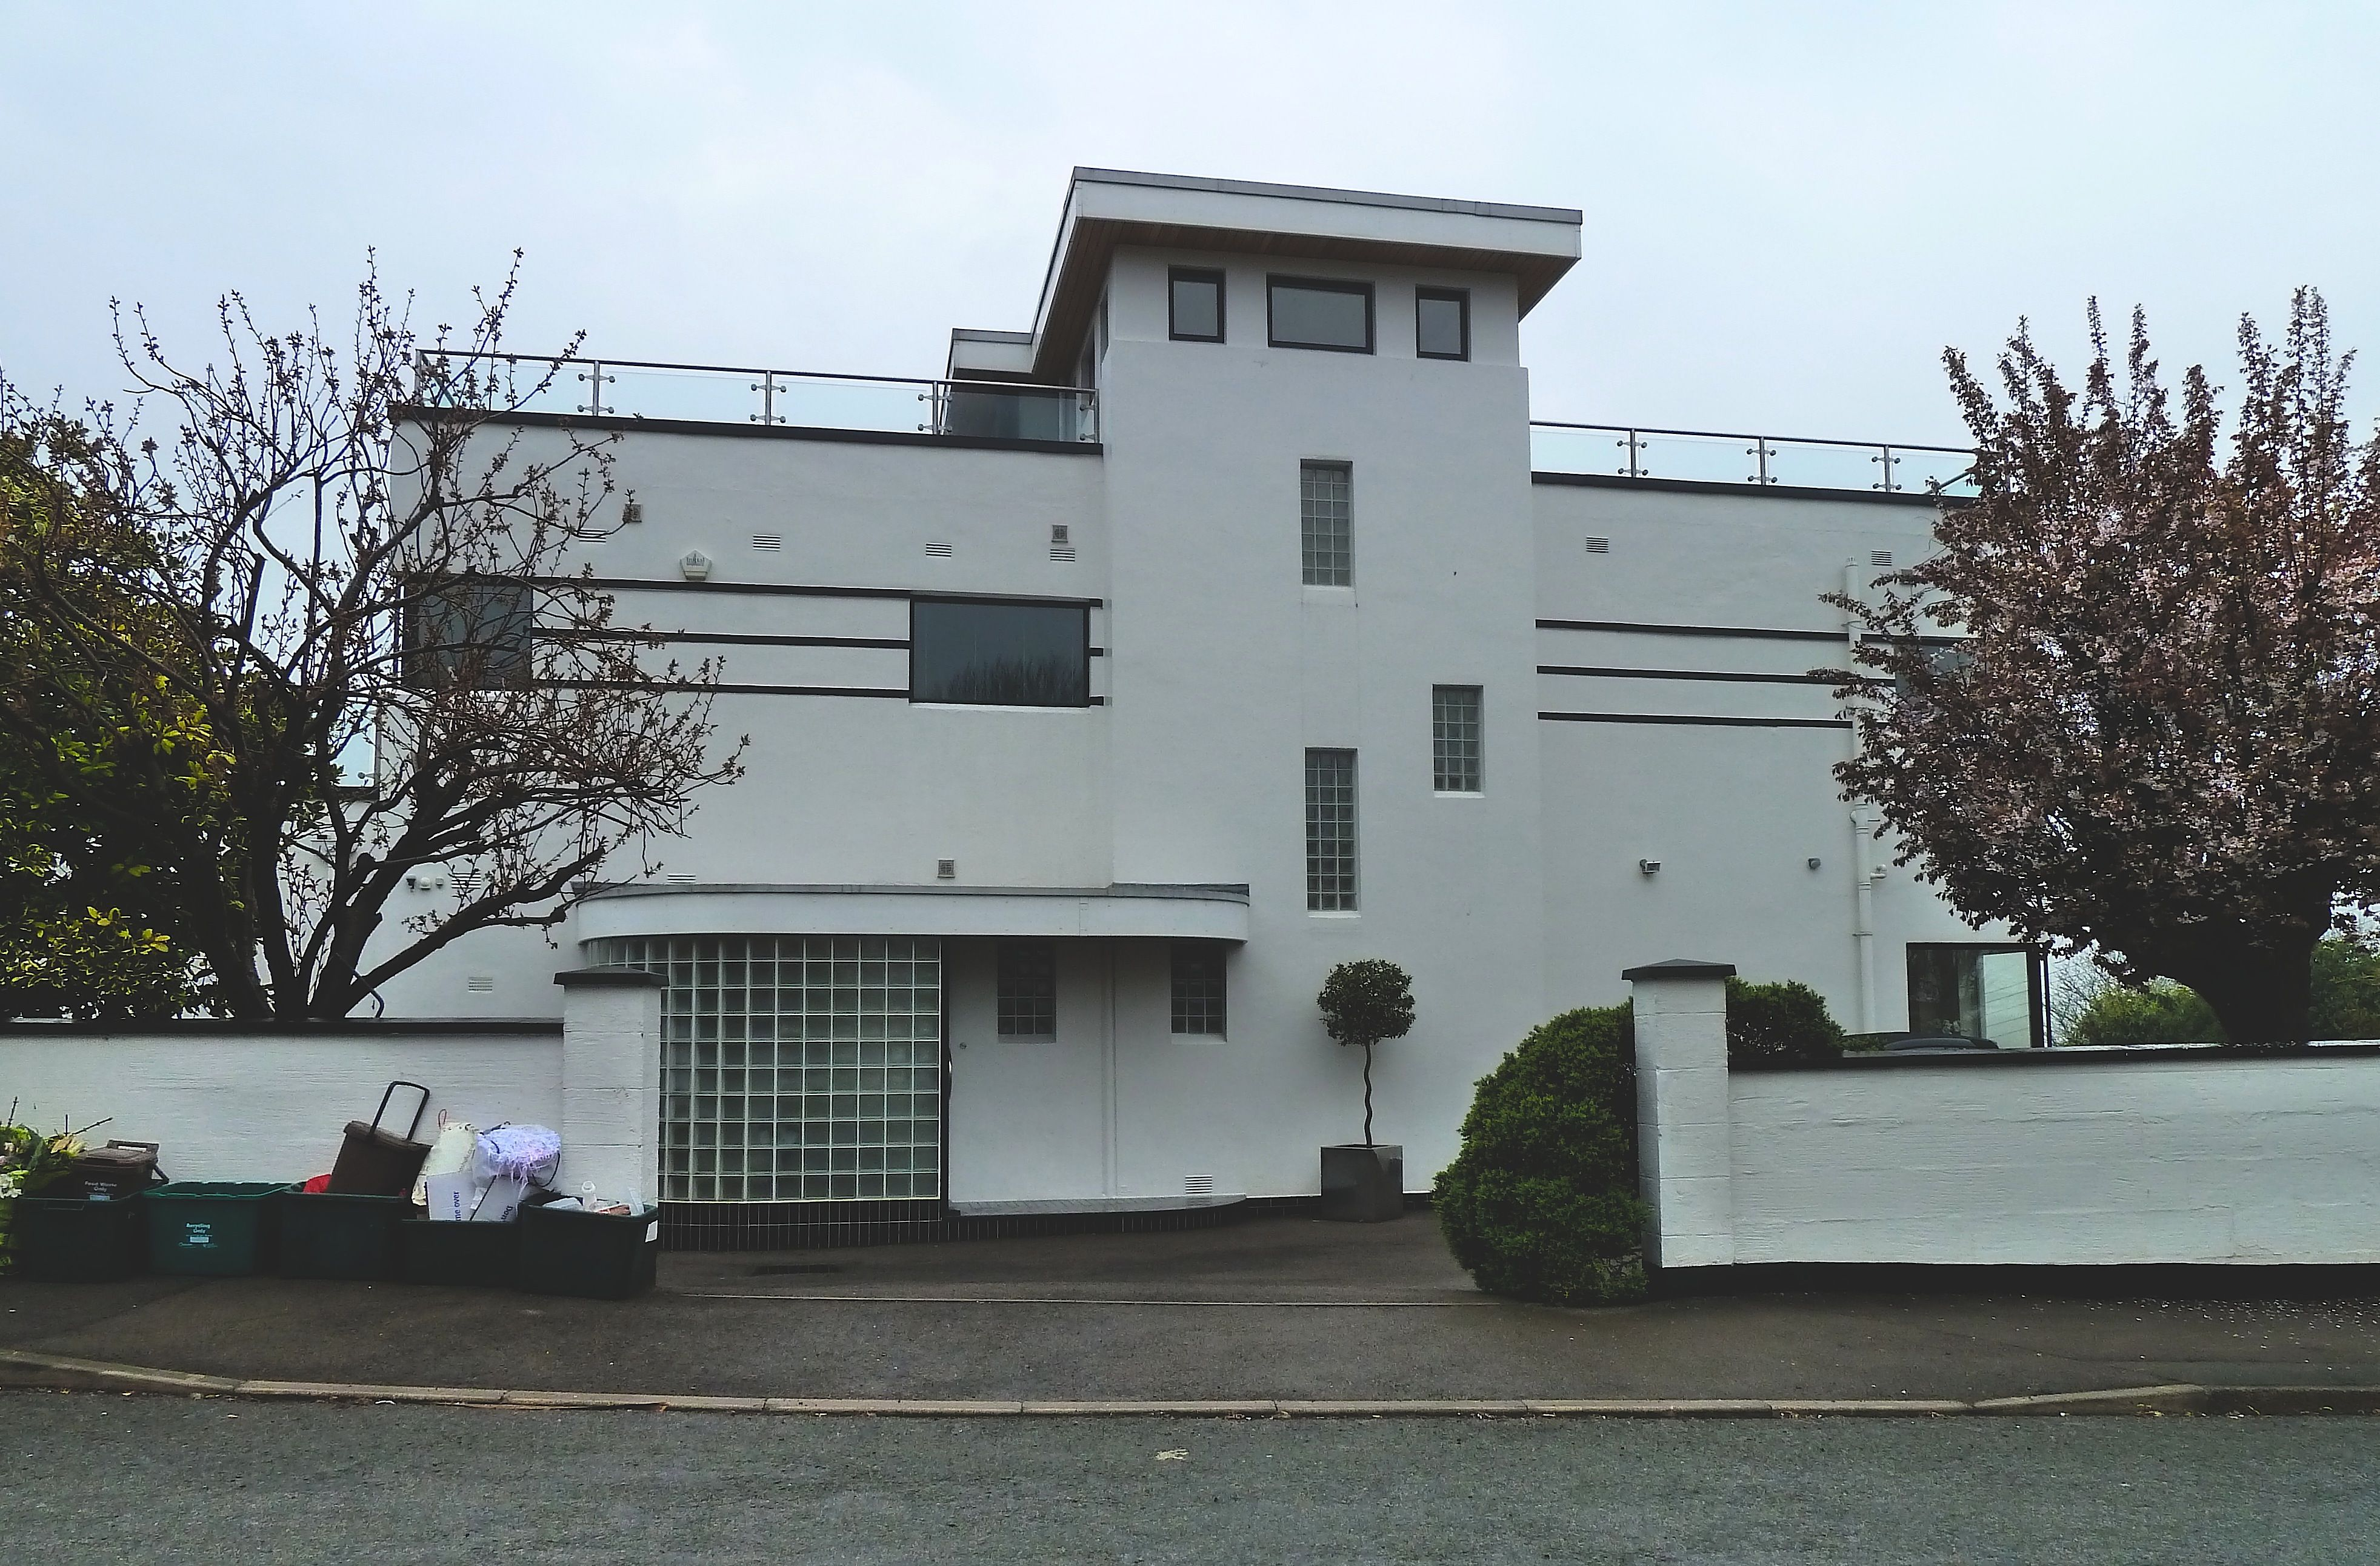 1930s Moderne House Dial Hill Road Clevedon Somerset